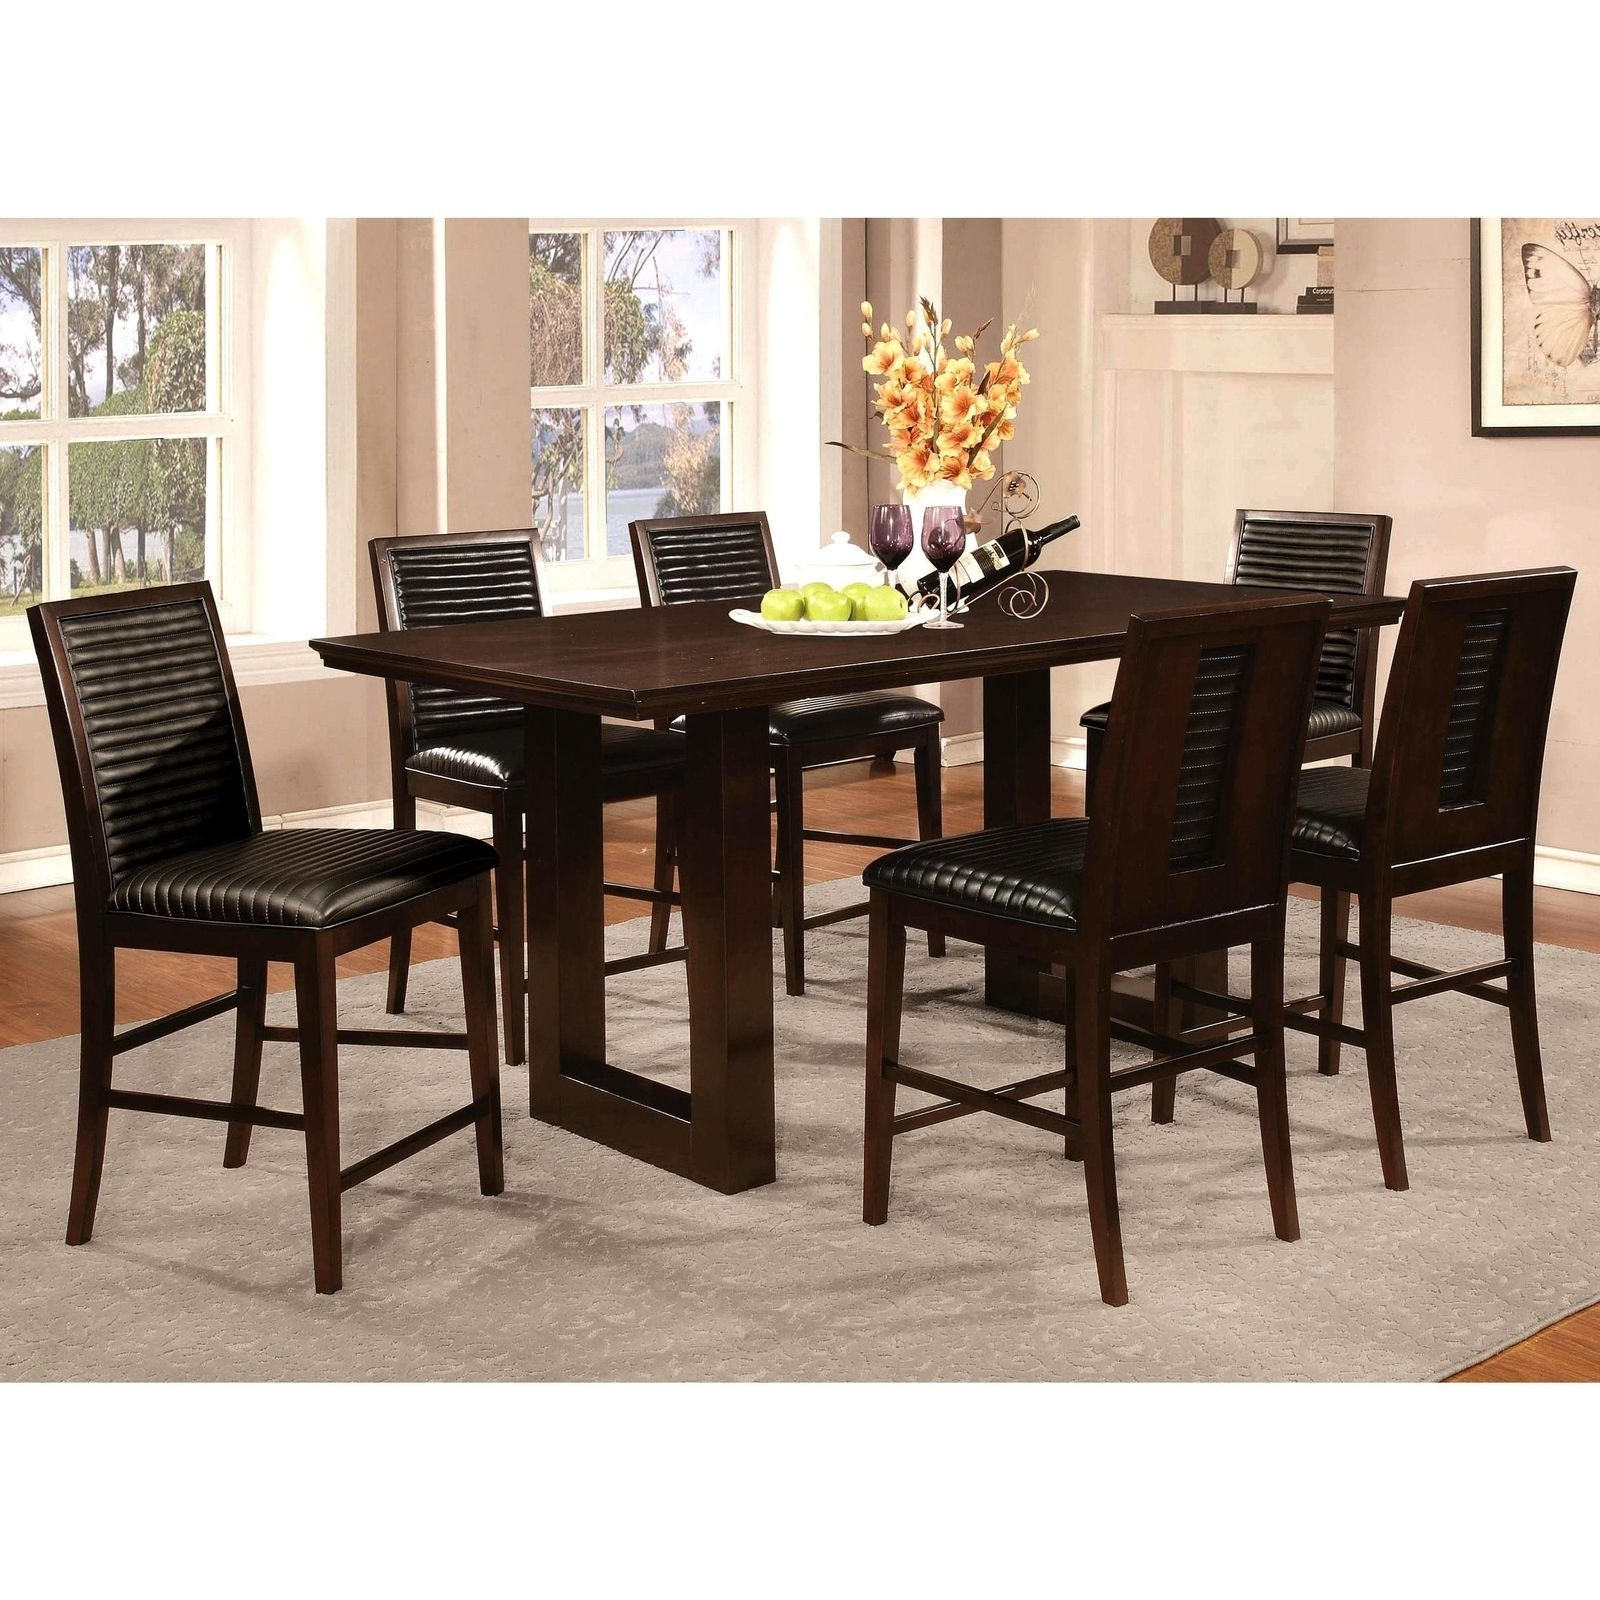 Sapire Channel Quilted Upholstered 7 Pc Counter Height Dining Set Inside 2017 Laurent 7 Piece Counter Sets With Upholstered Counterstools (View 4 of 25)